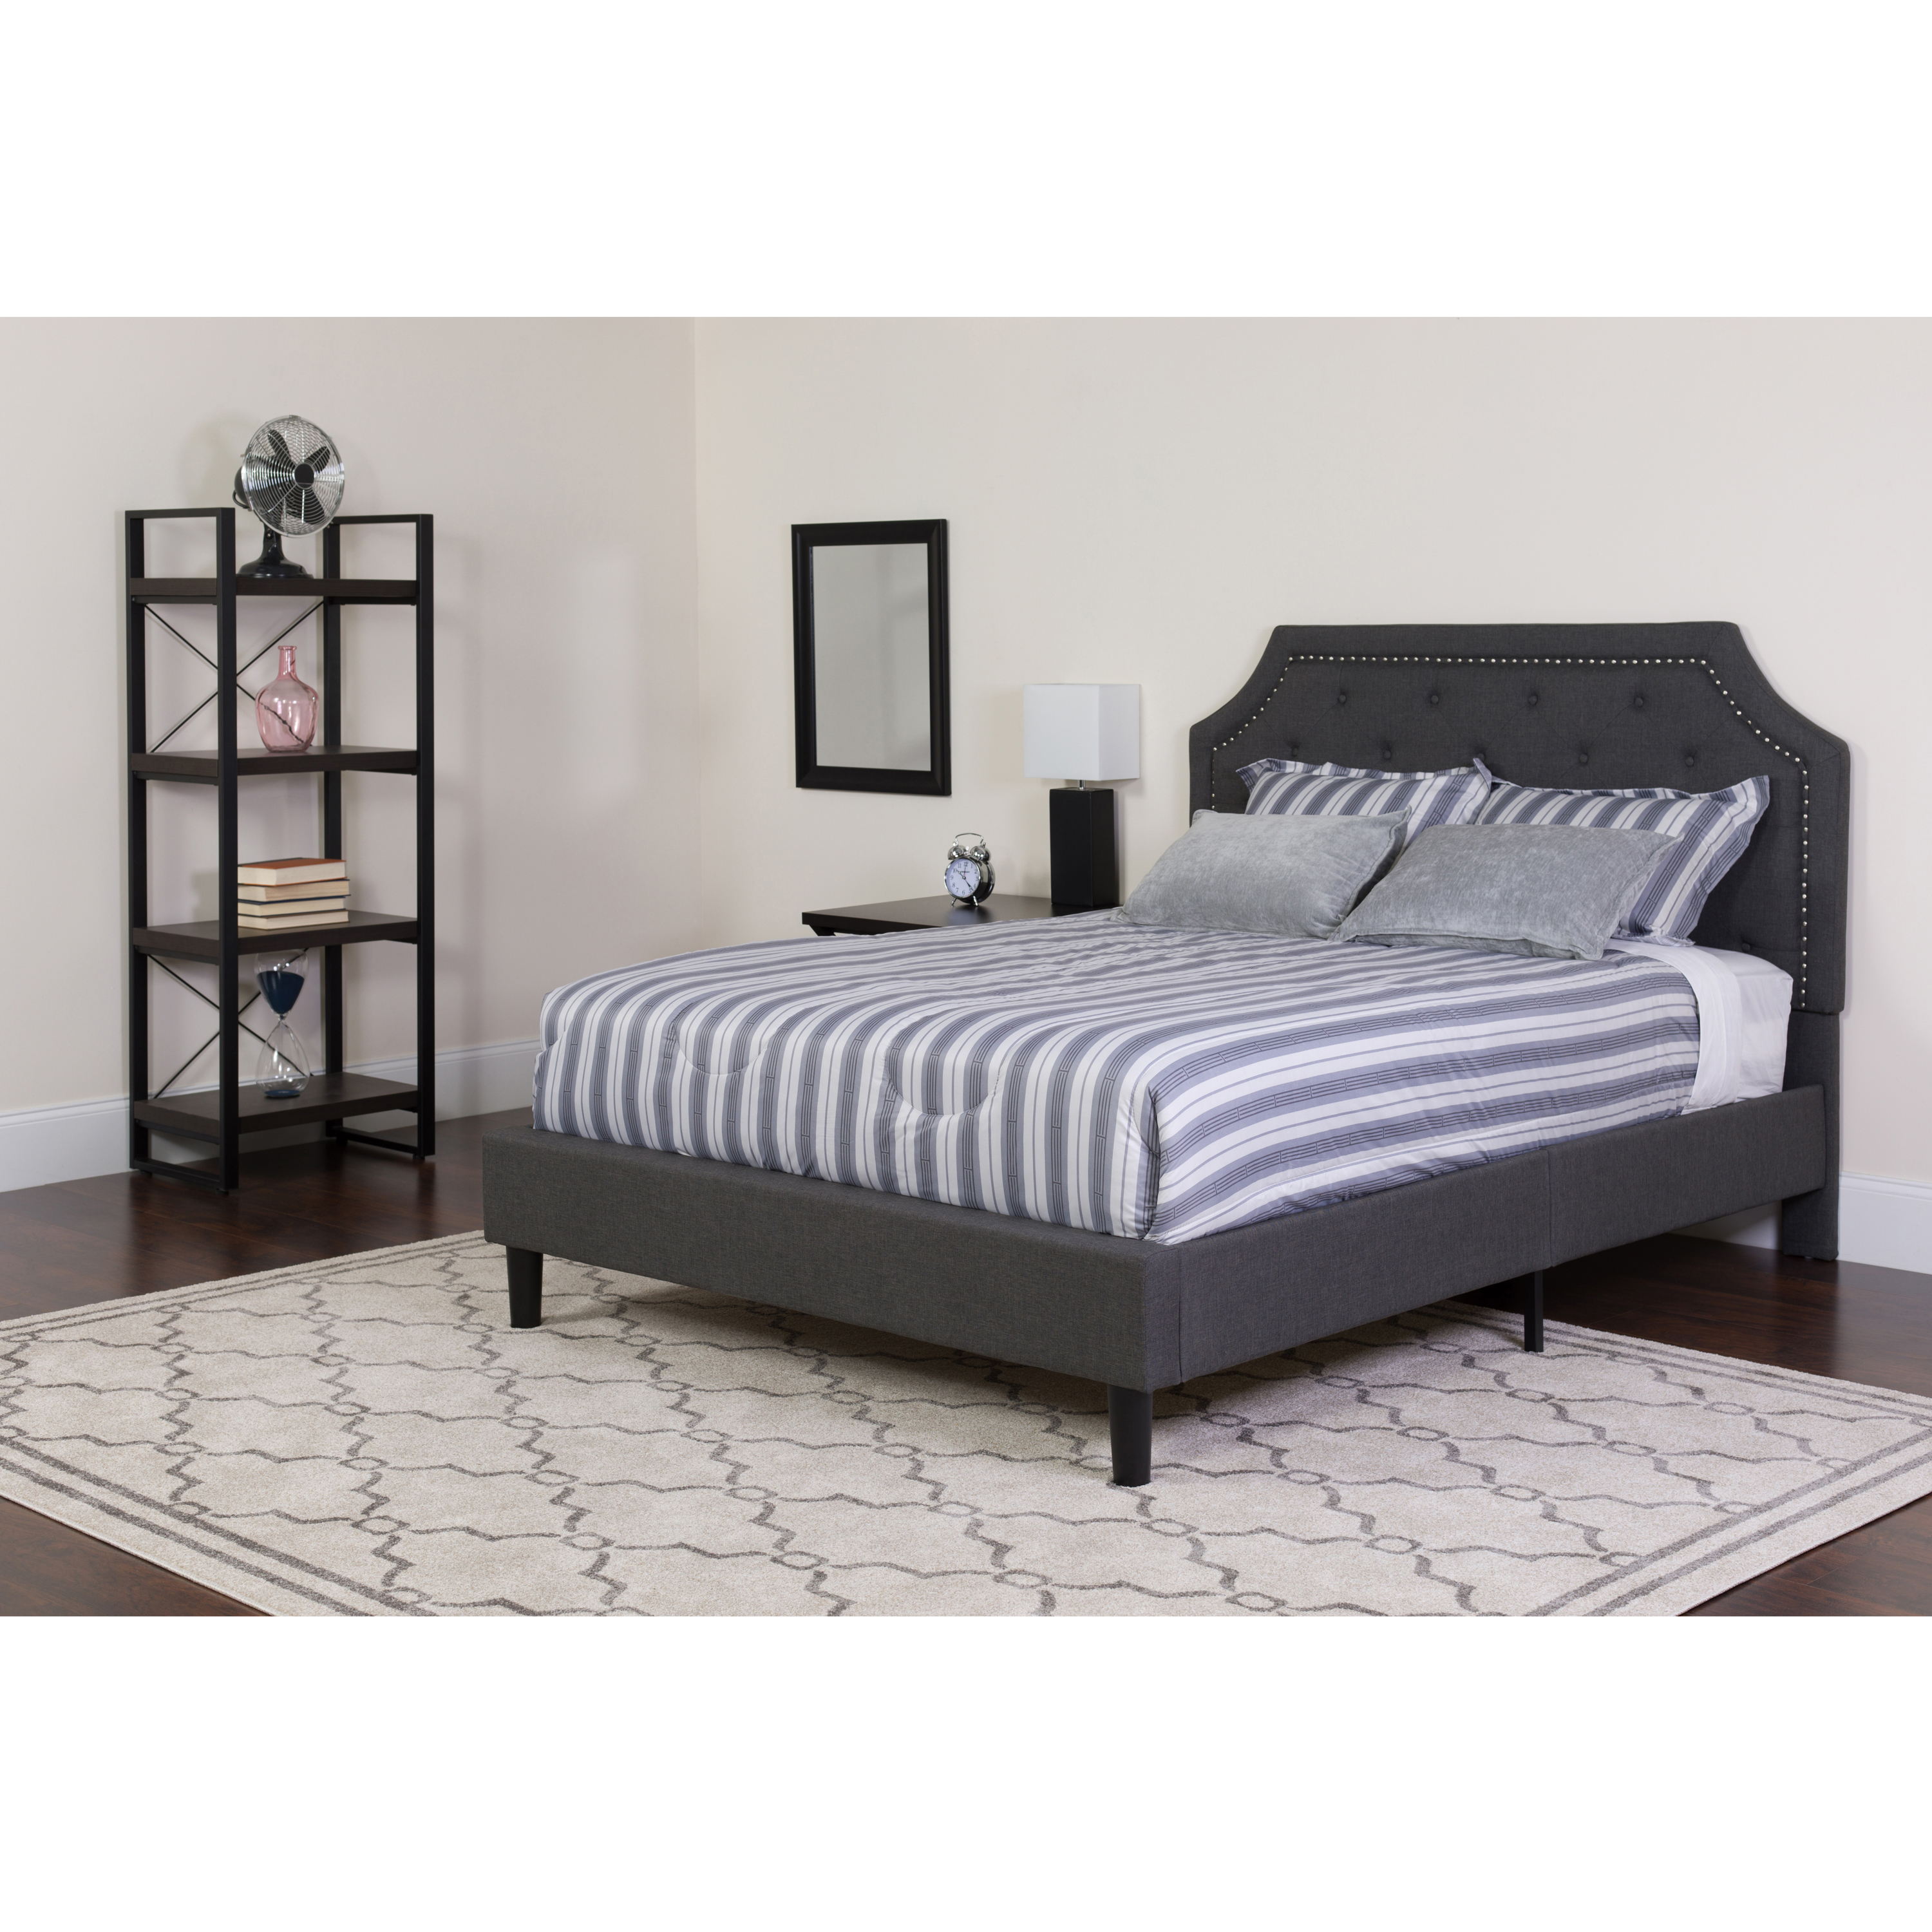 Flash Furniture Brighton Tufted Upholstered Full Size Platform Bed in Dark Gray Fabric